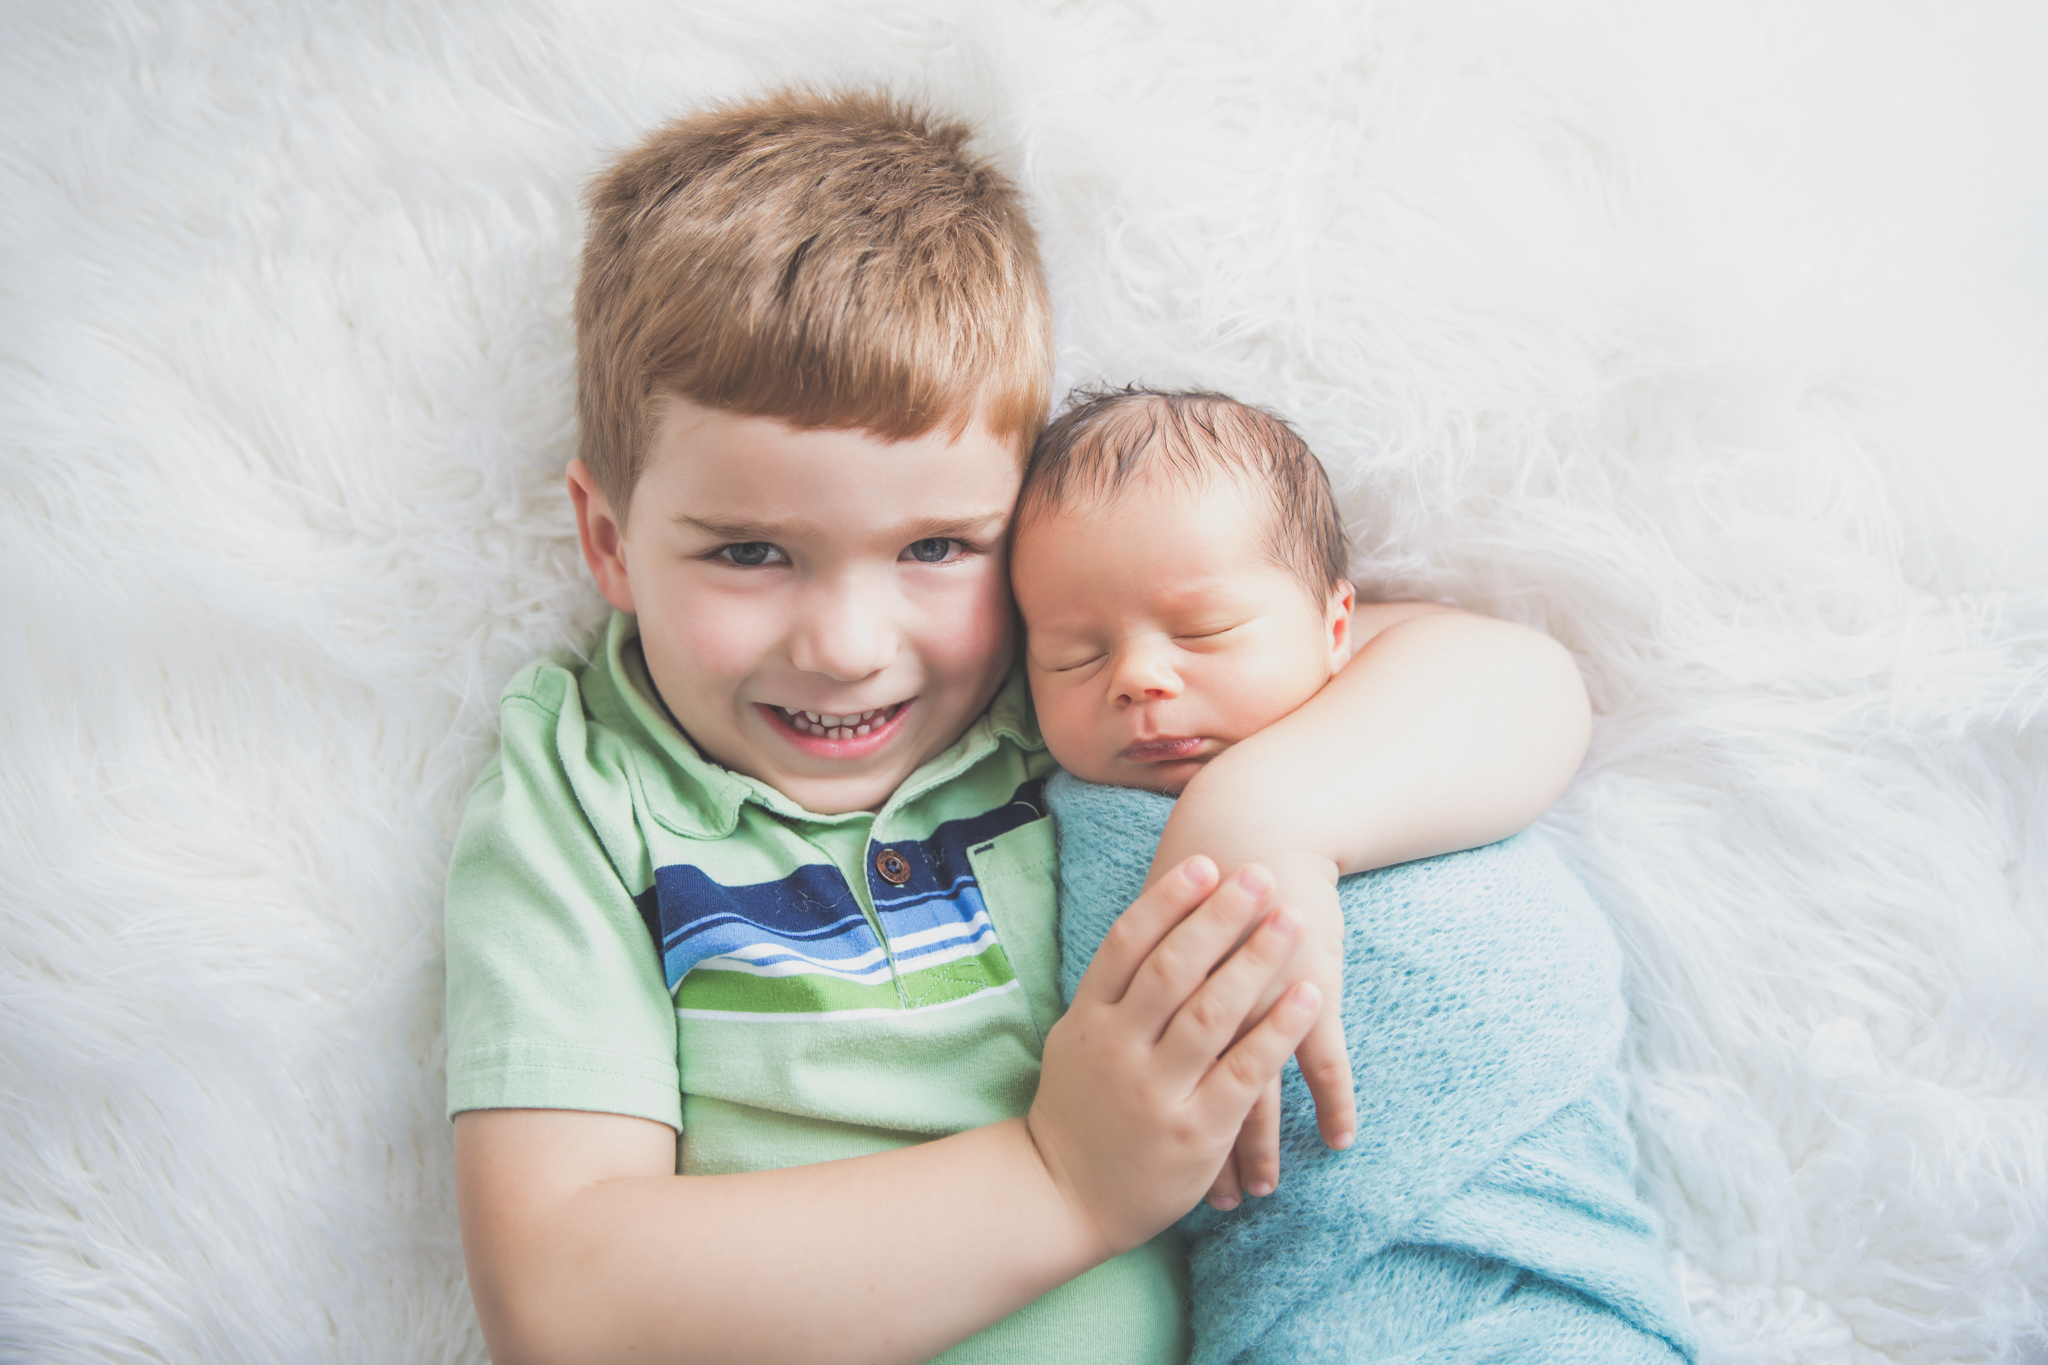 Sibling photos Newborn session photographer lifestyle studio - Cara Peterson Photography Rockford IL-4-10.jpg